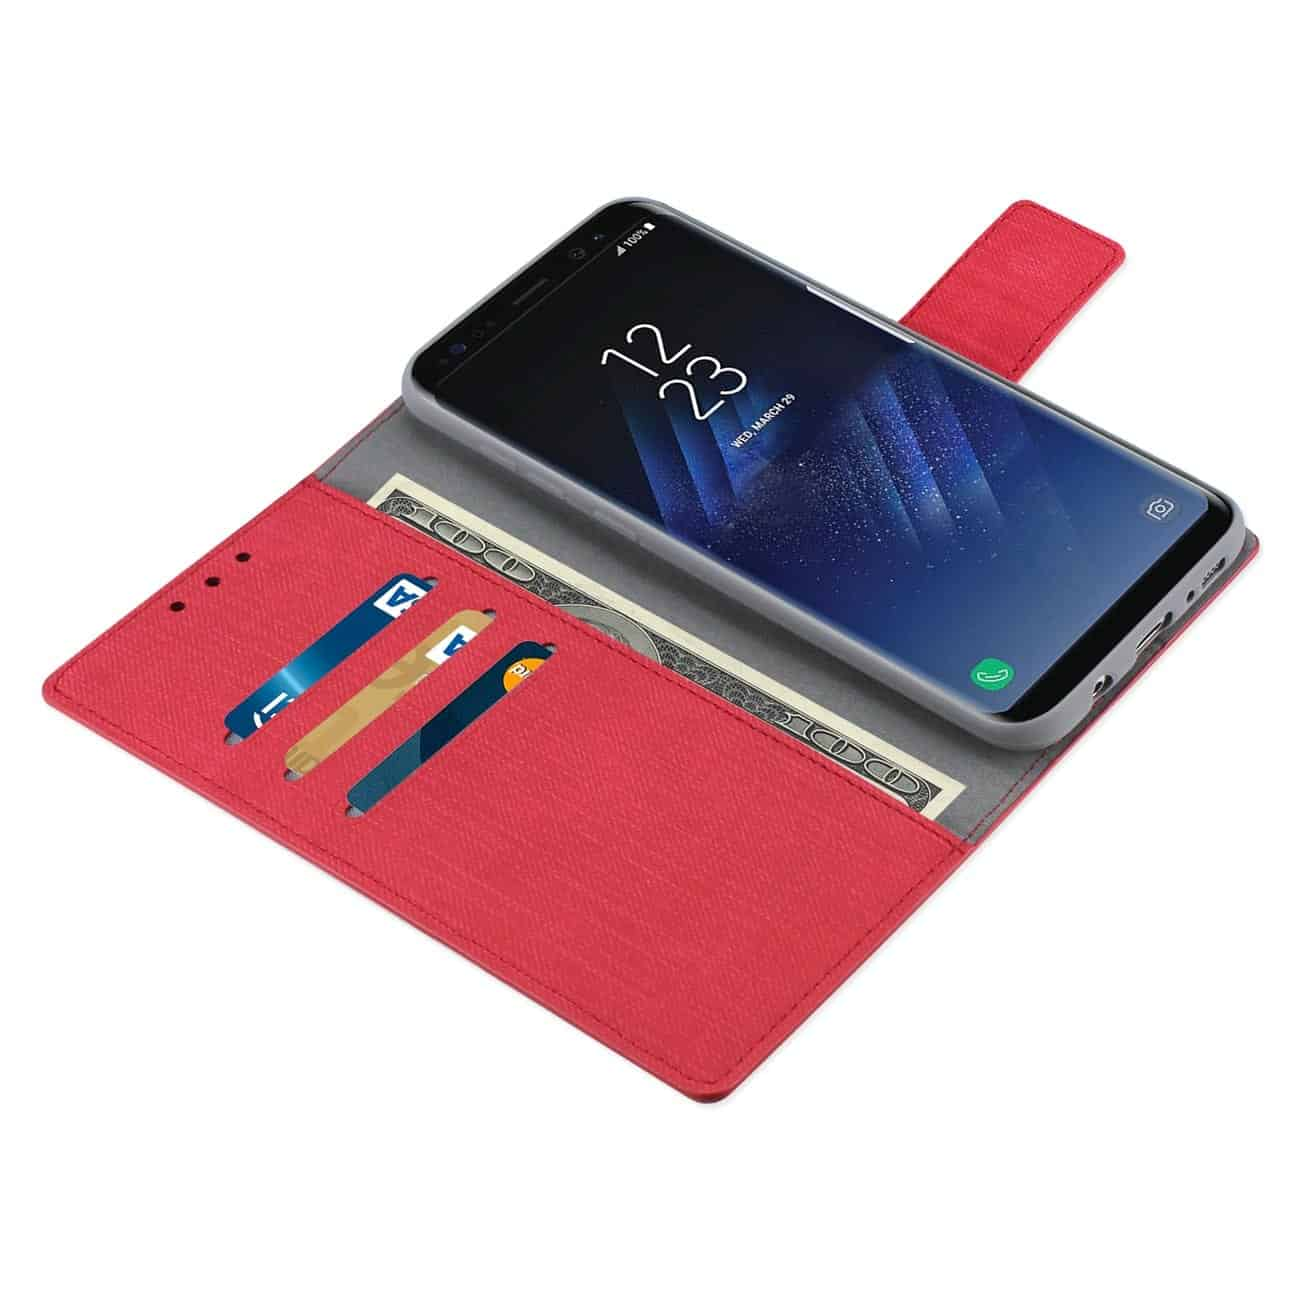 SAMSUNG S8 EDGE/ S8 PLUS DENIM WALLET CASE WITH GUMMY INNER SHELL AND KICKSTAND FUNCTION IN RED